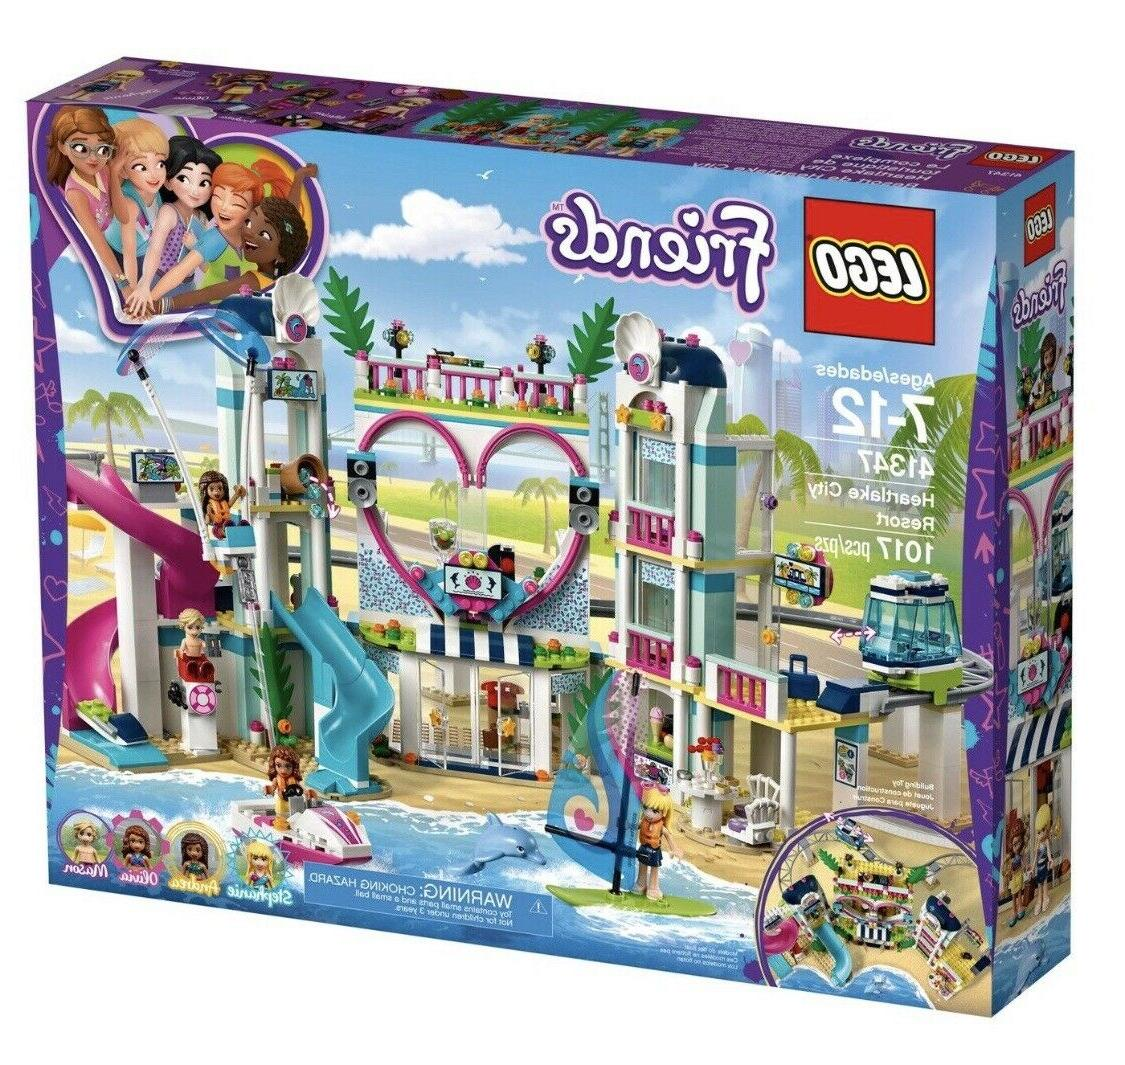 LEGO® Waterpark Building Sets for